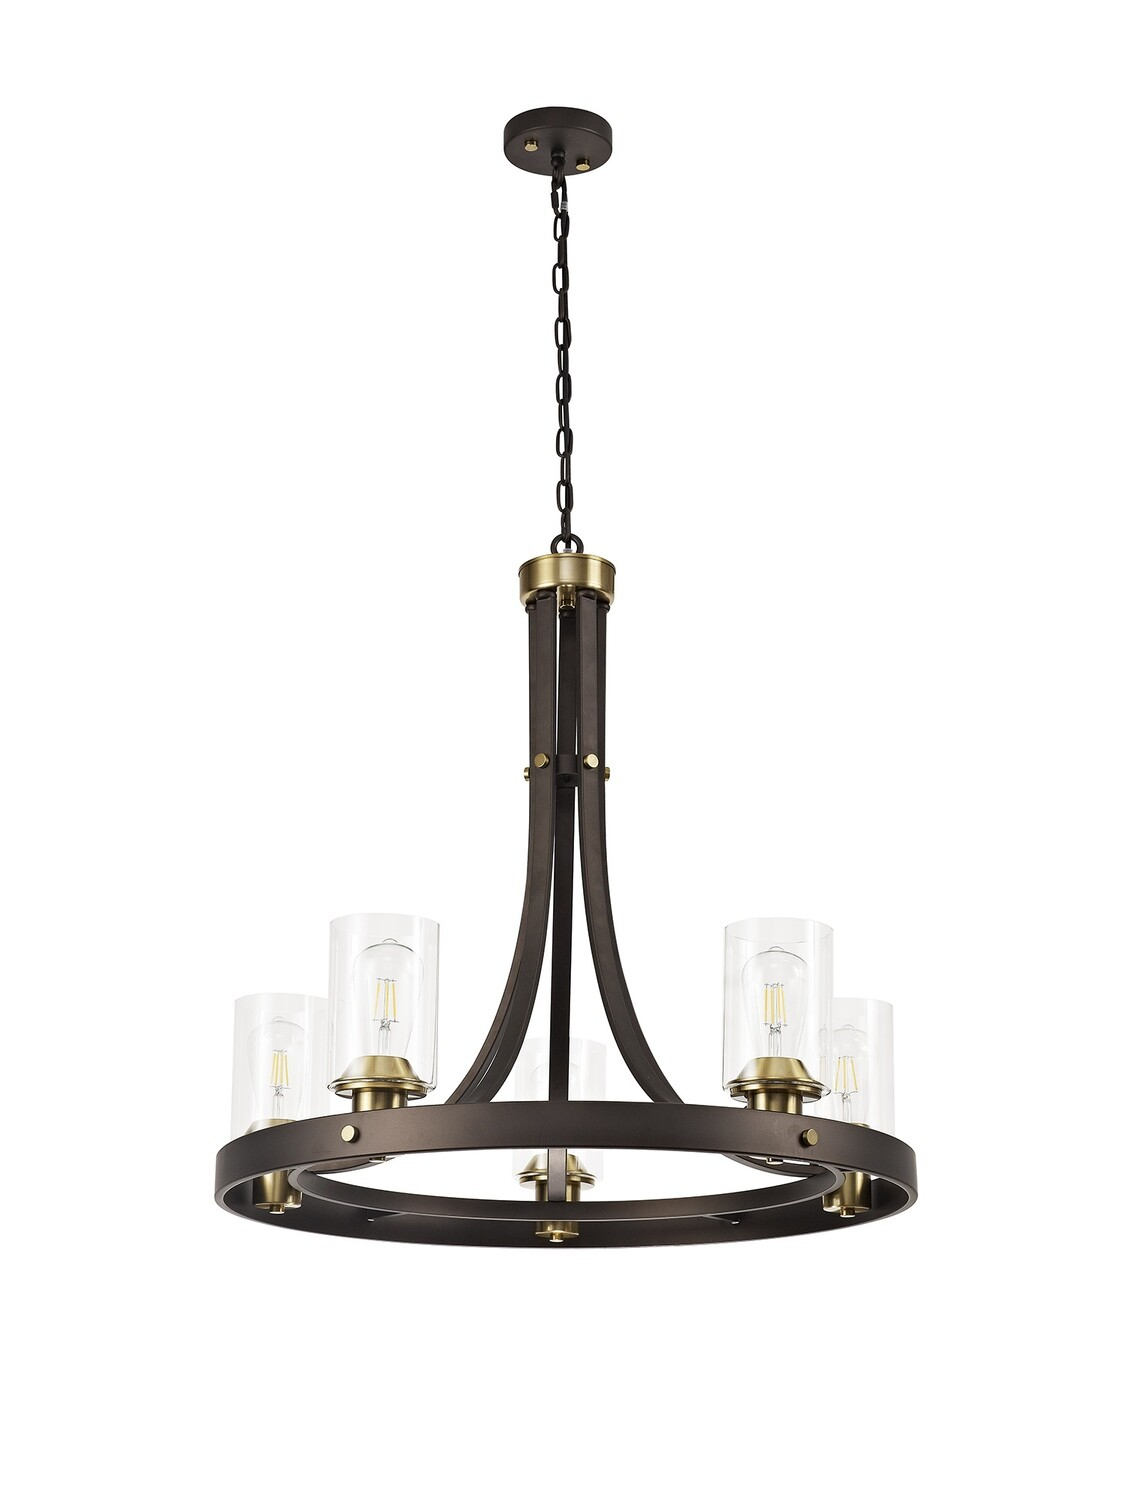 Marini Pendant 5 Light E27, Brown Oxide/Bronze With Clear Glass Shades